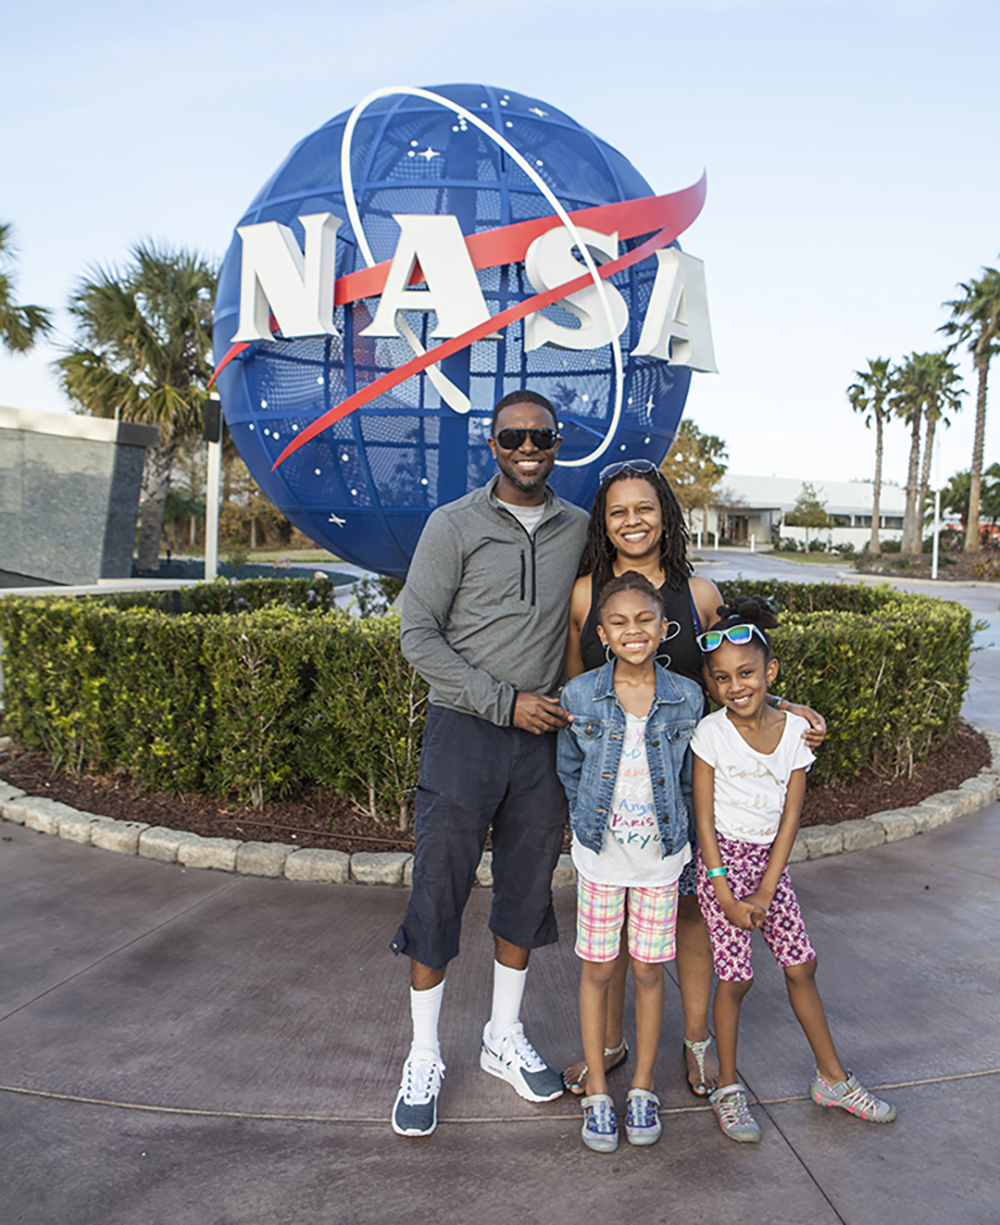 Photographer Sheldon Isaac with his family at NASA